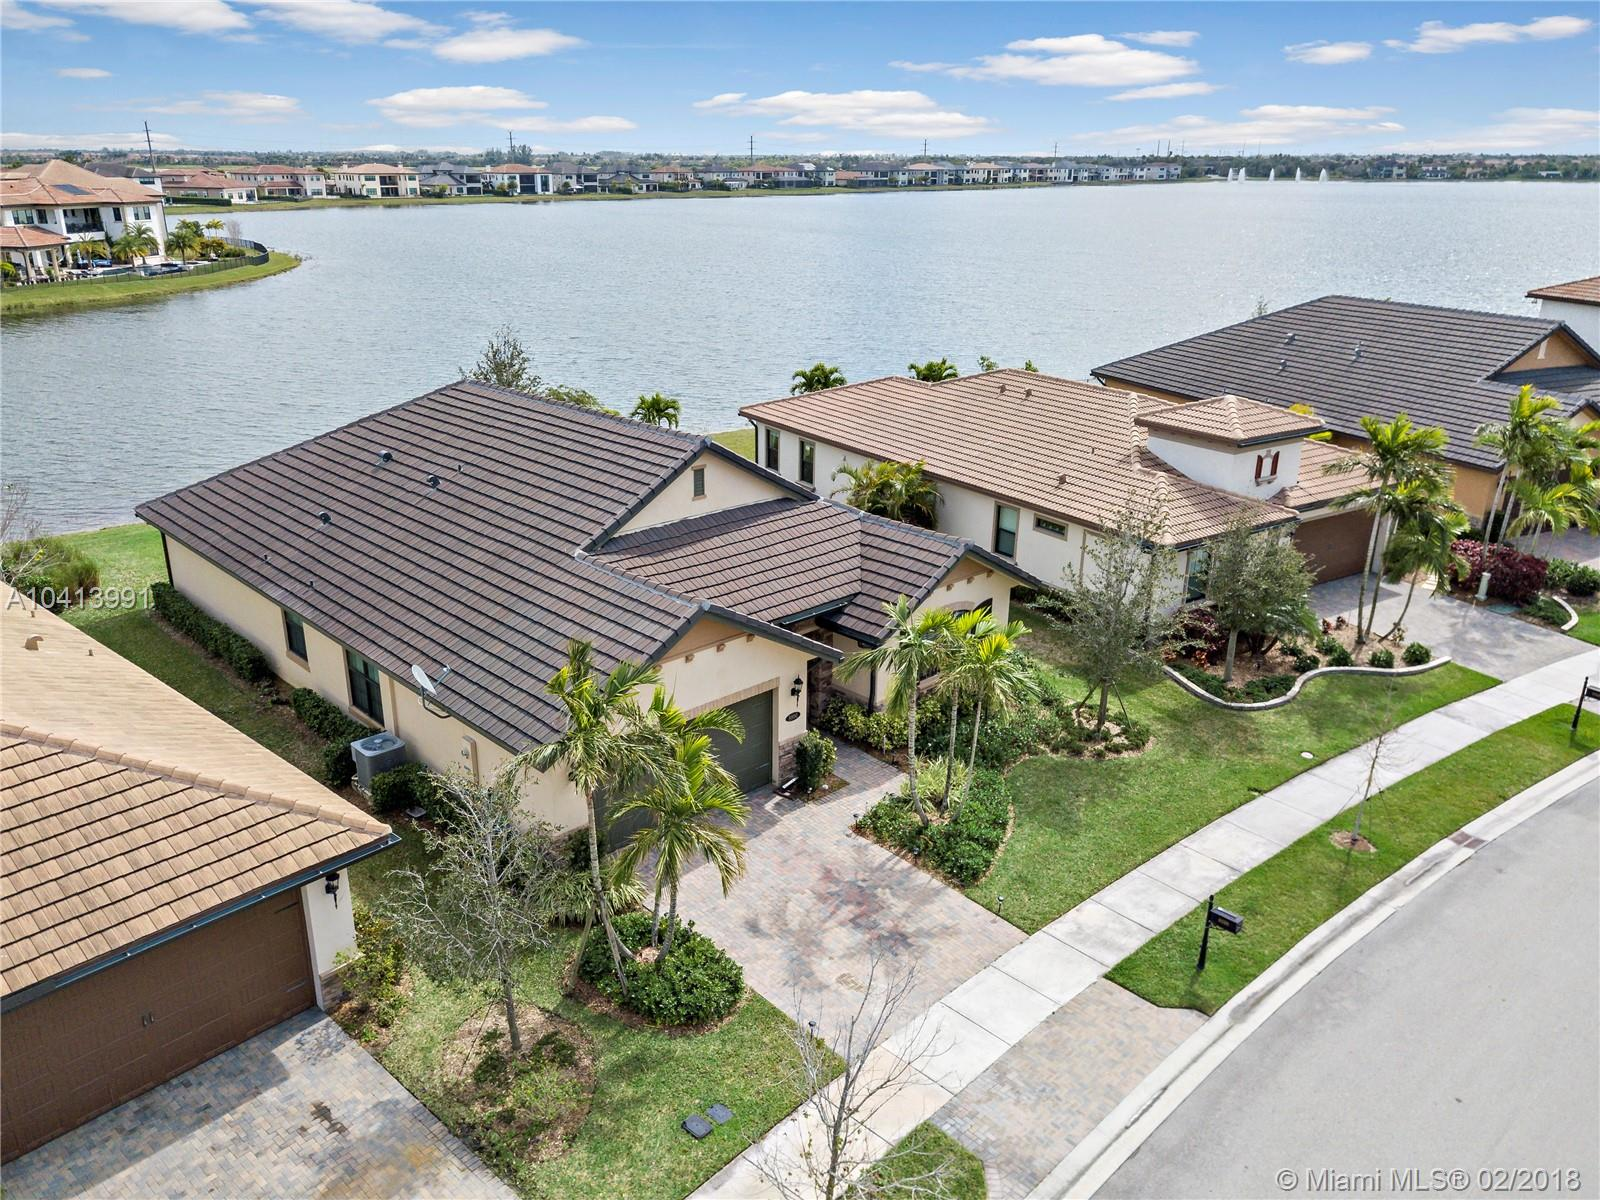 8890 Carrington Ave, Parkland , FL 33076